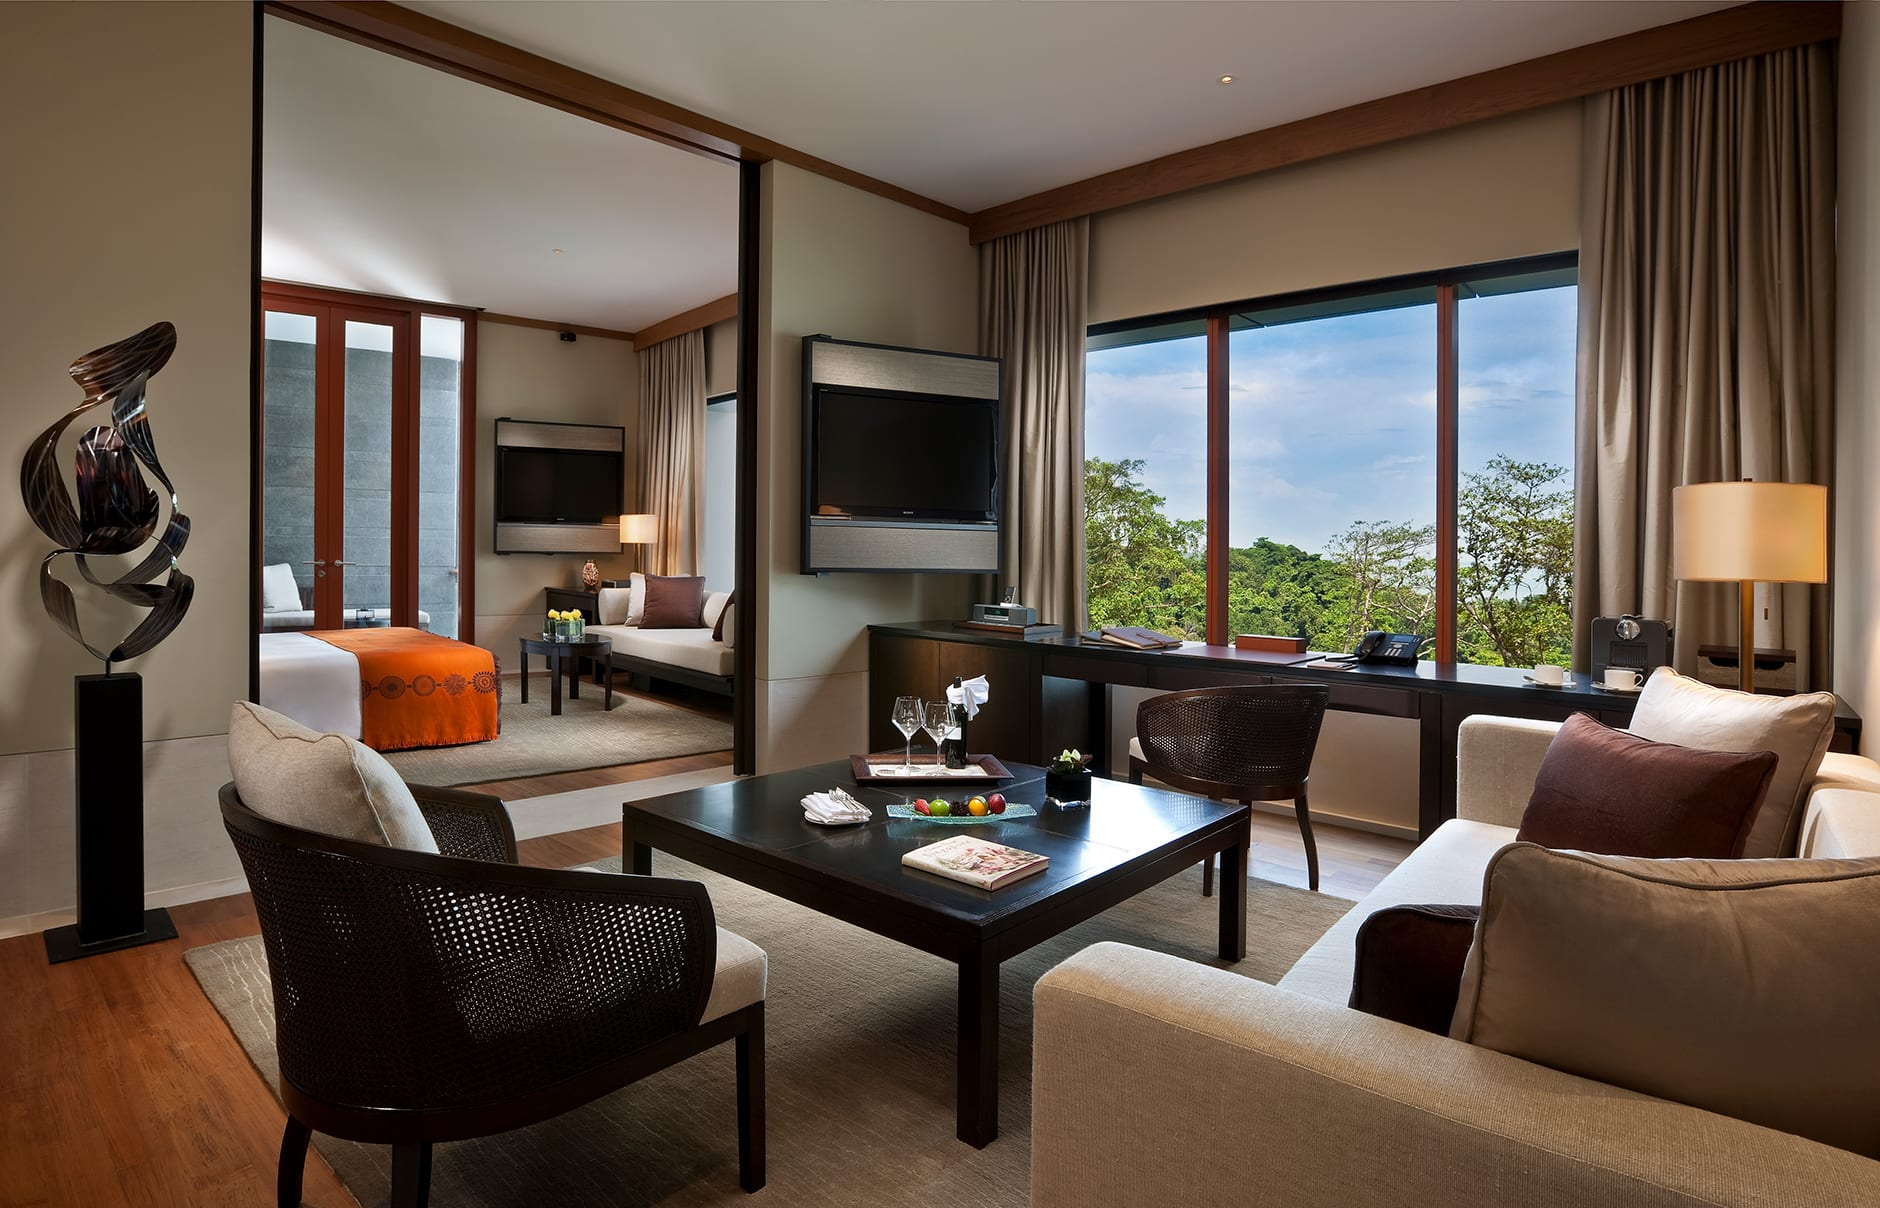 Capella Singapore, Singapore. Hotel Review by TravelPlusStyle. Photo © Capella Hotels and Resorts